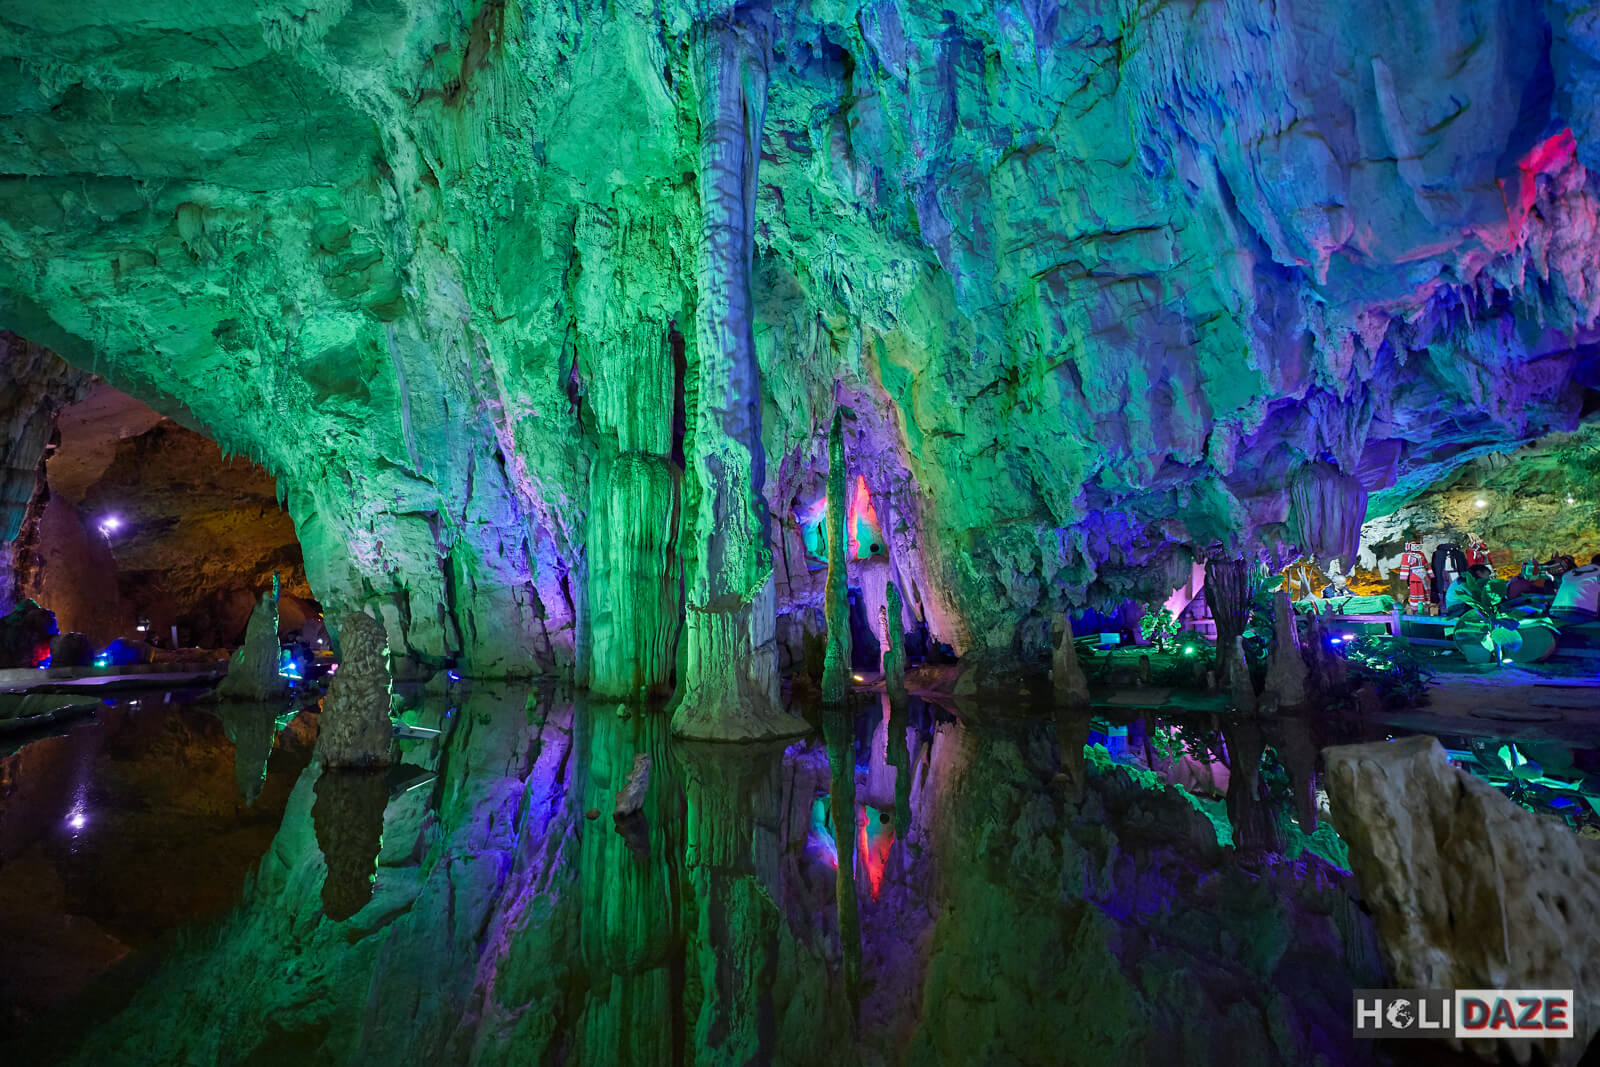 Jiuxiang Scenic Area is one of the best things to do in Yunnan, China because of the breathtaking natural beauty, including mountains, rivers, valleys and over 100 caves